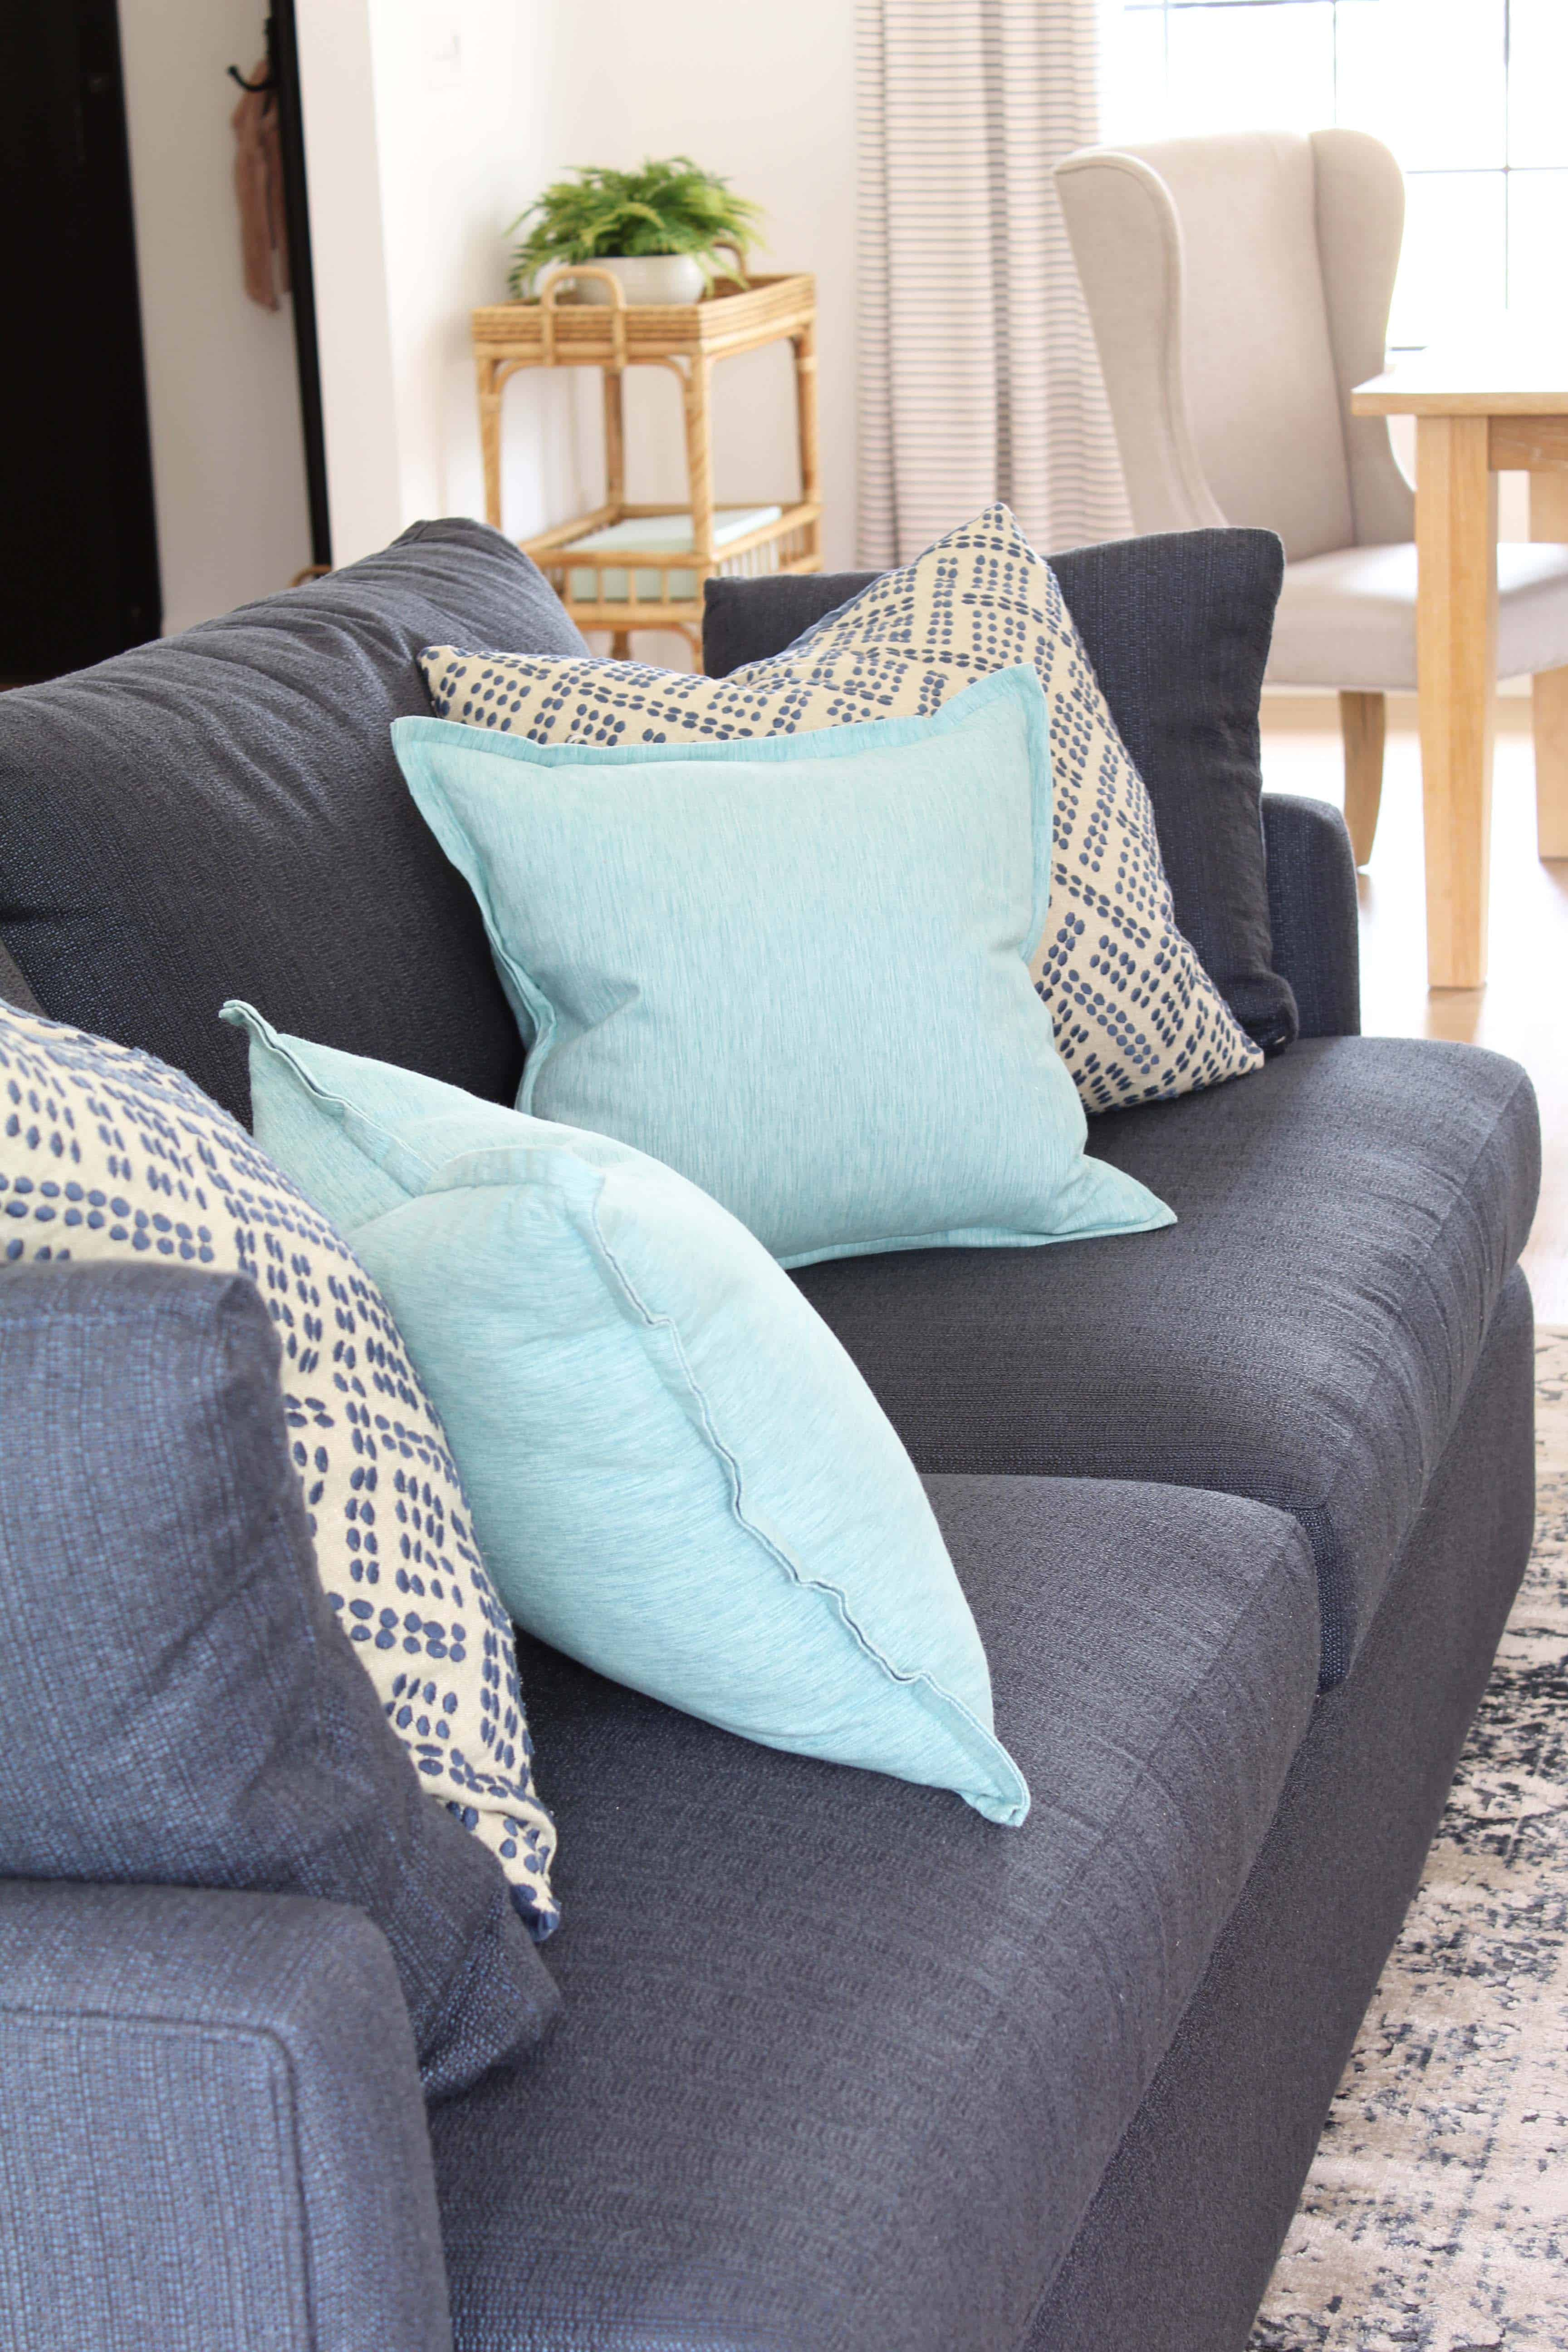 Our Crate and Barrel Lounge II Sofa Review | A Nod to Navy